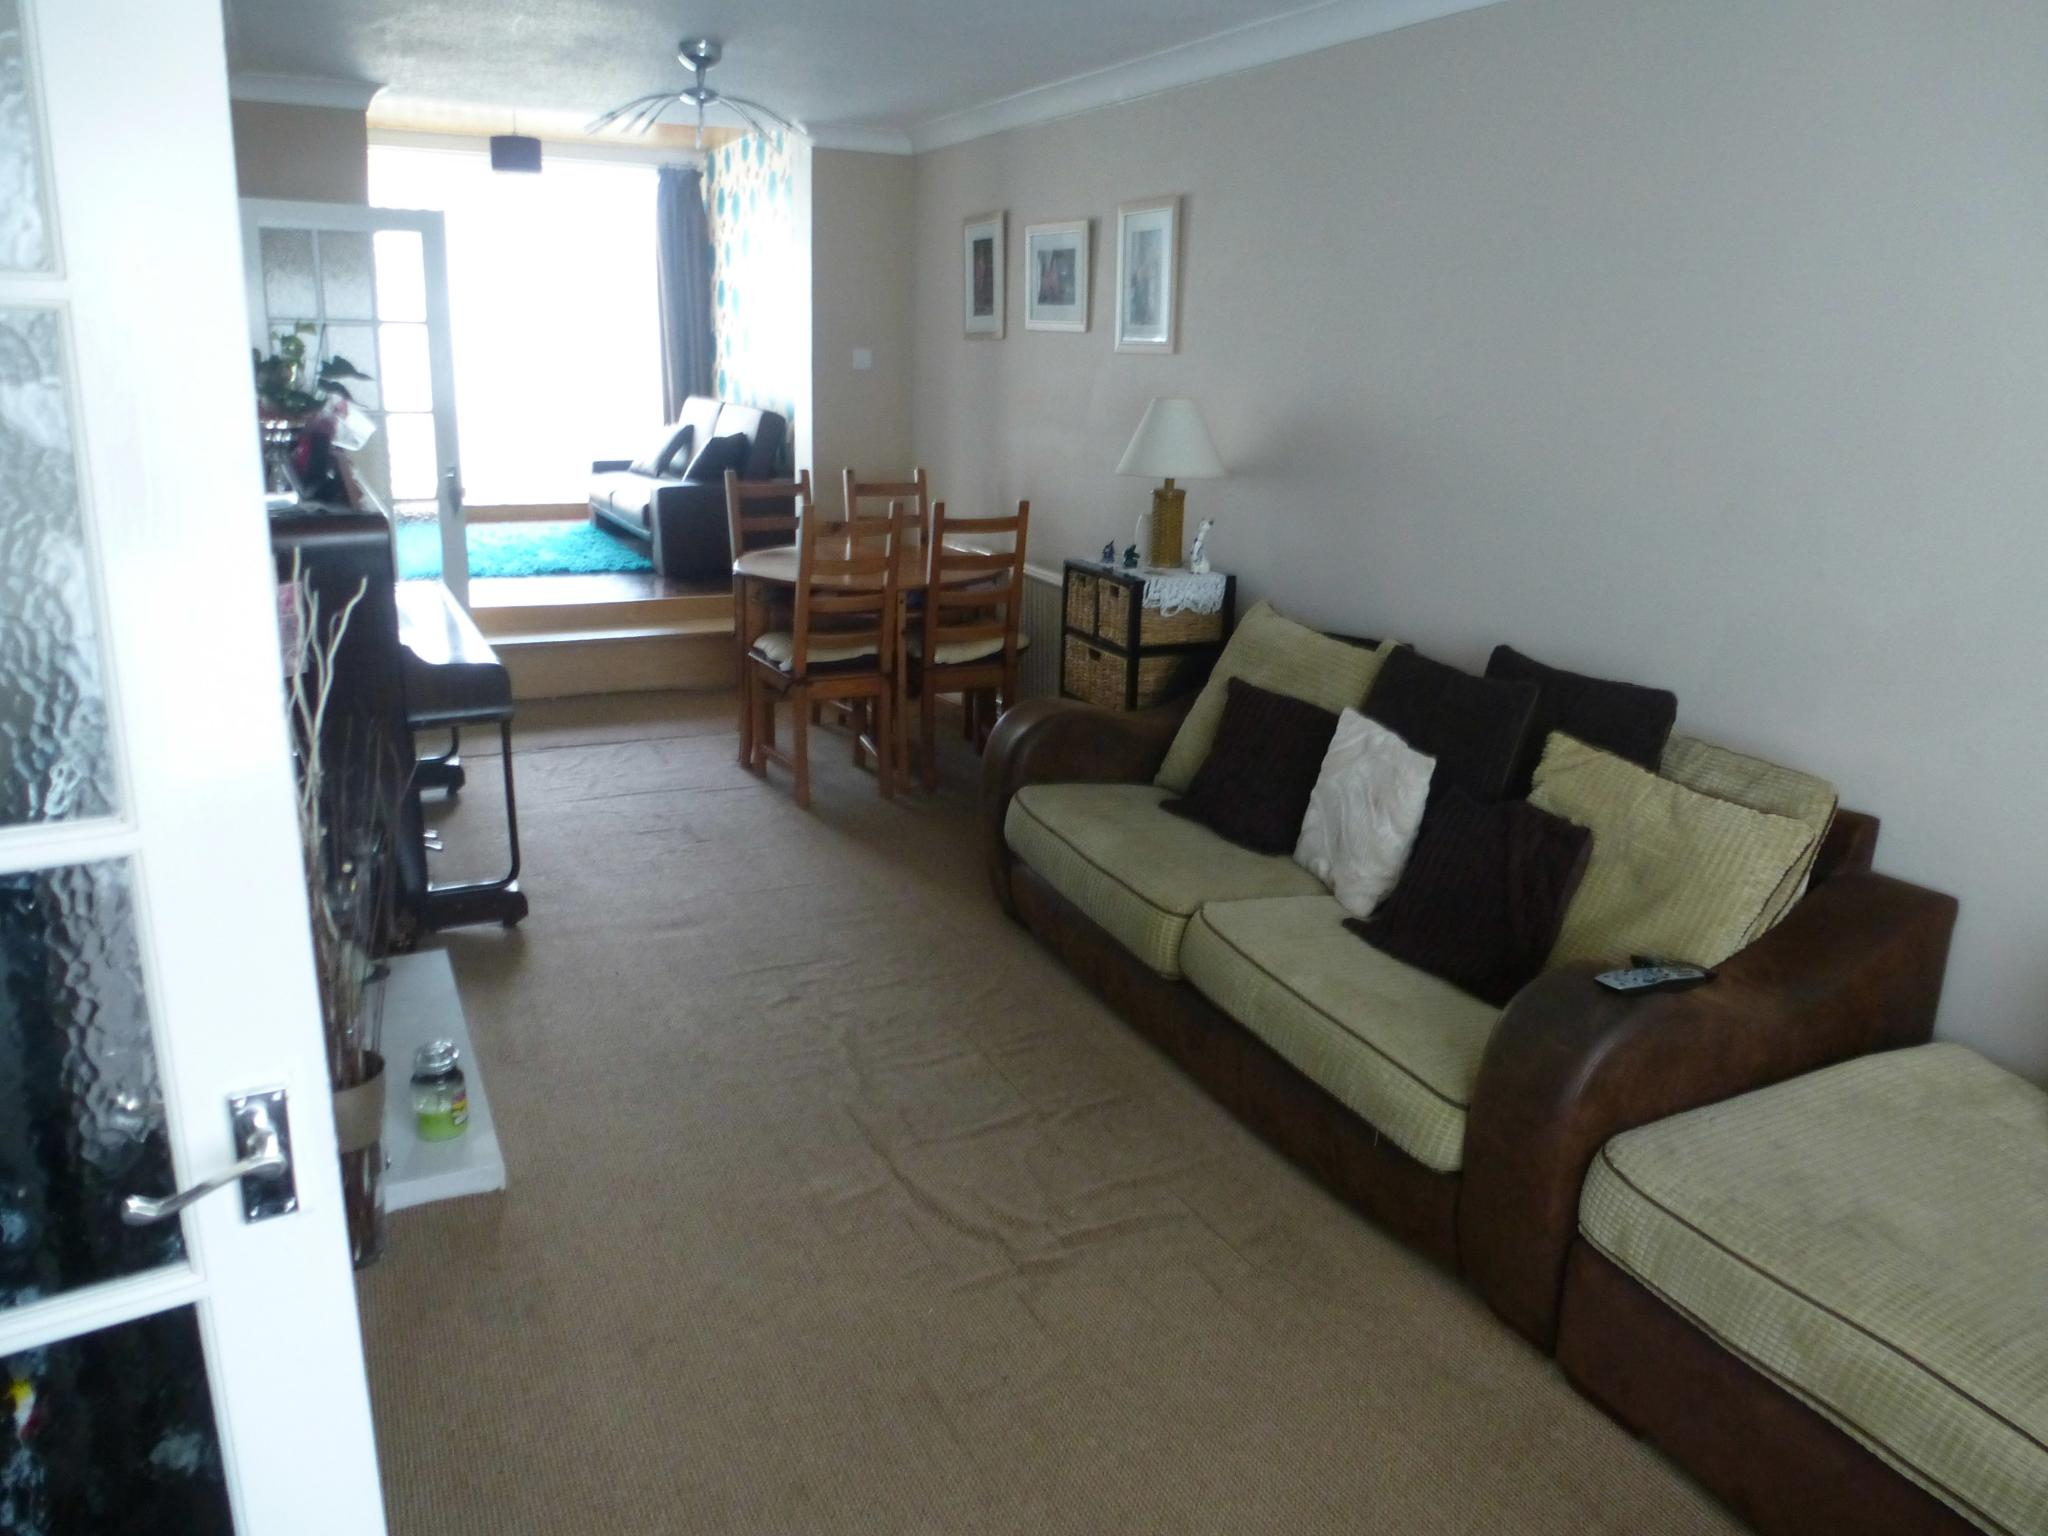 Image 2 of 2 of LOUNGE, on Accommodation Comprising for